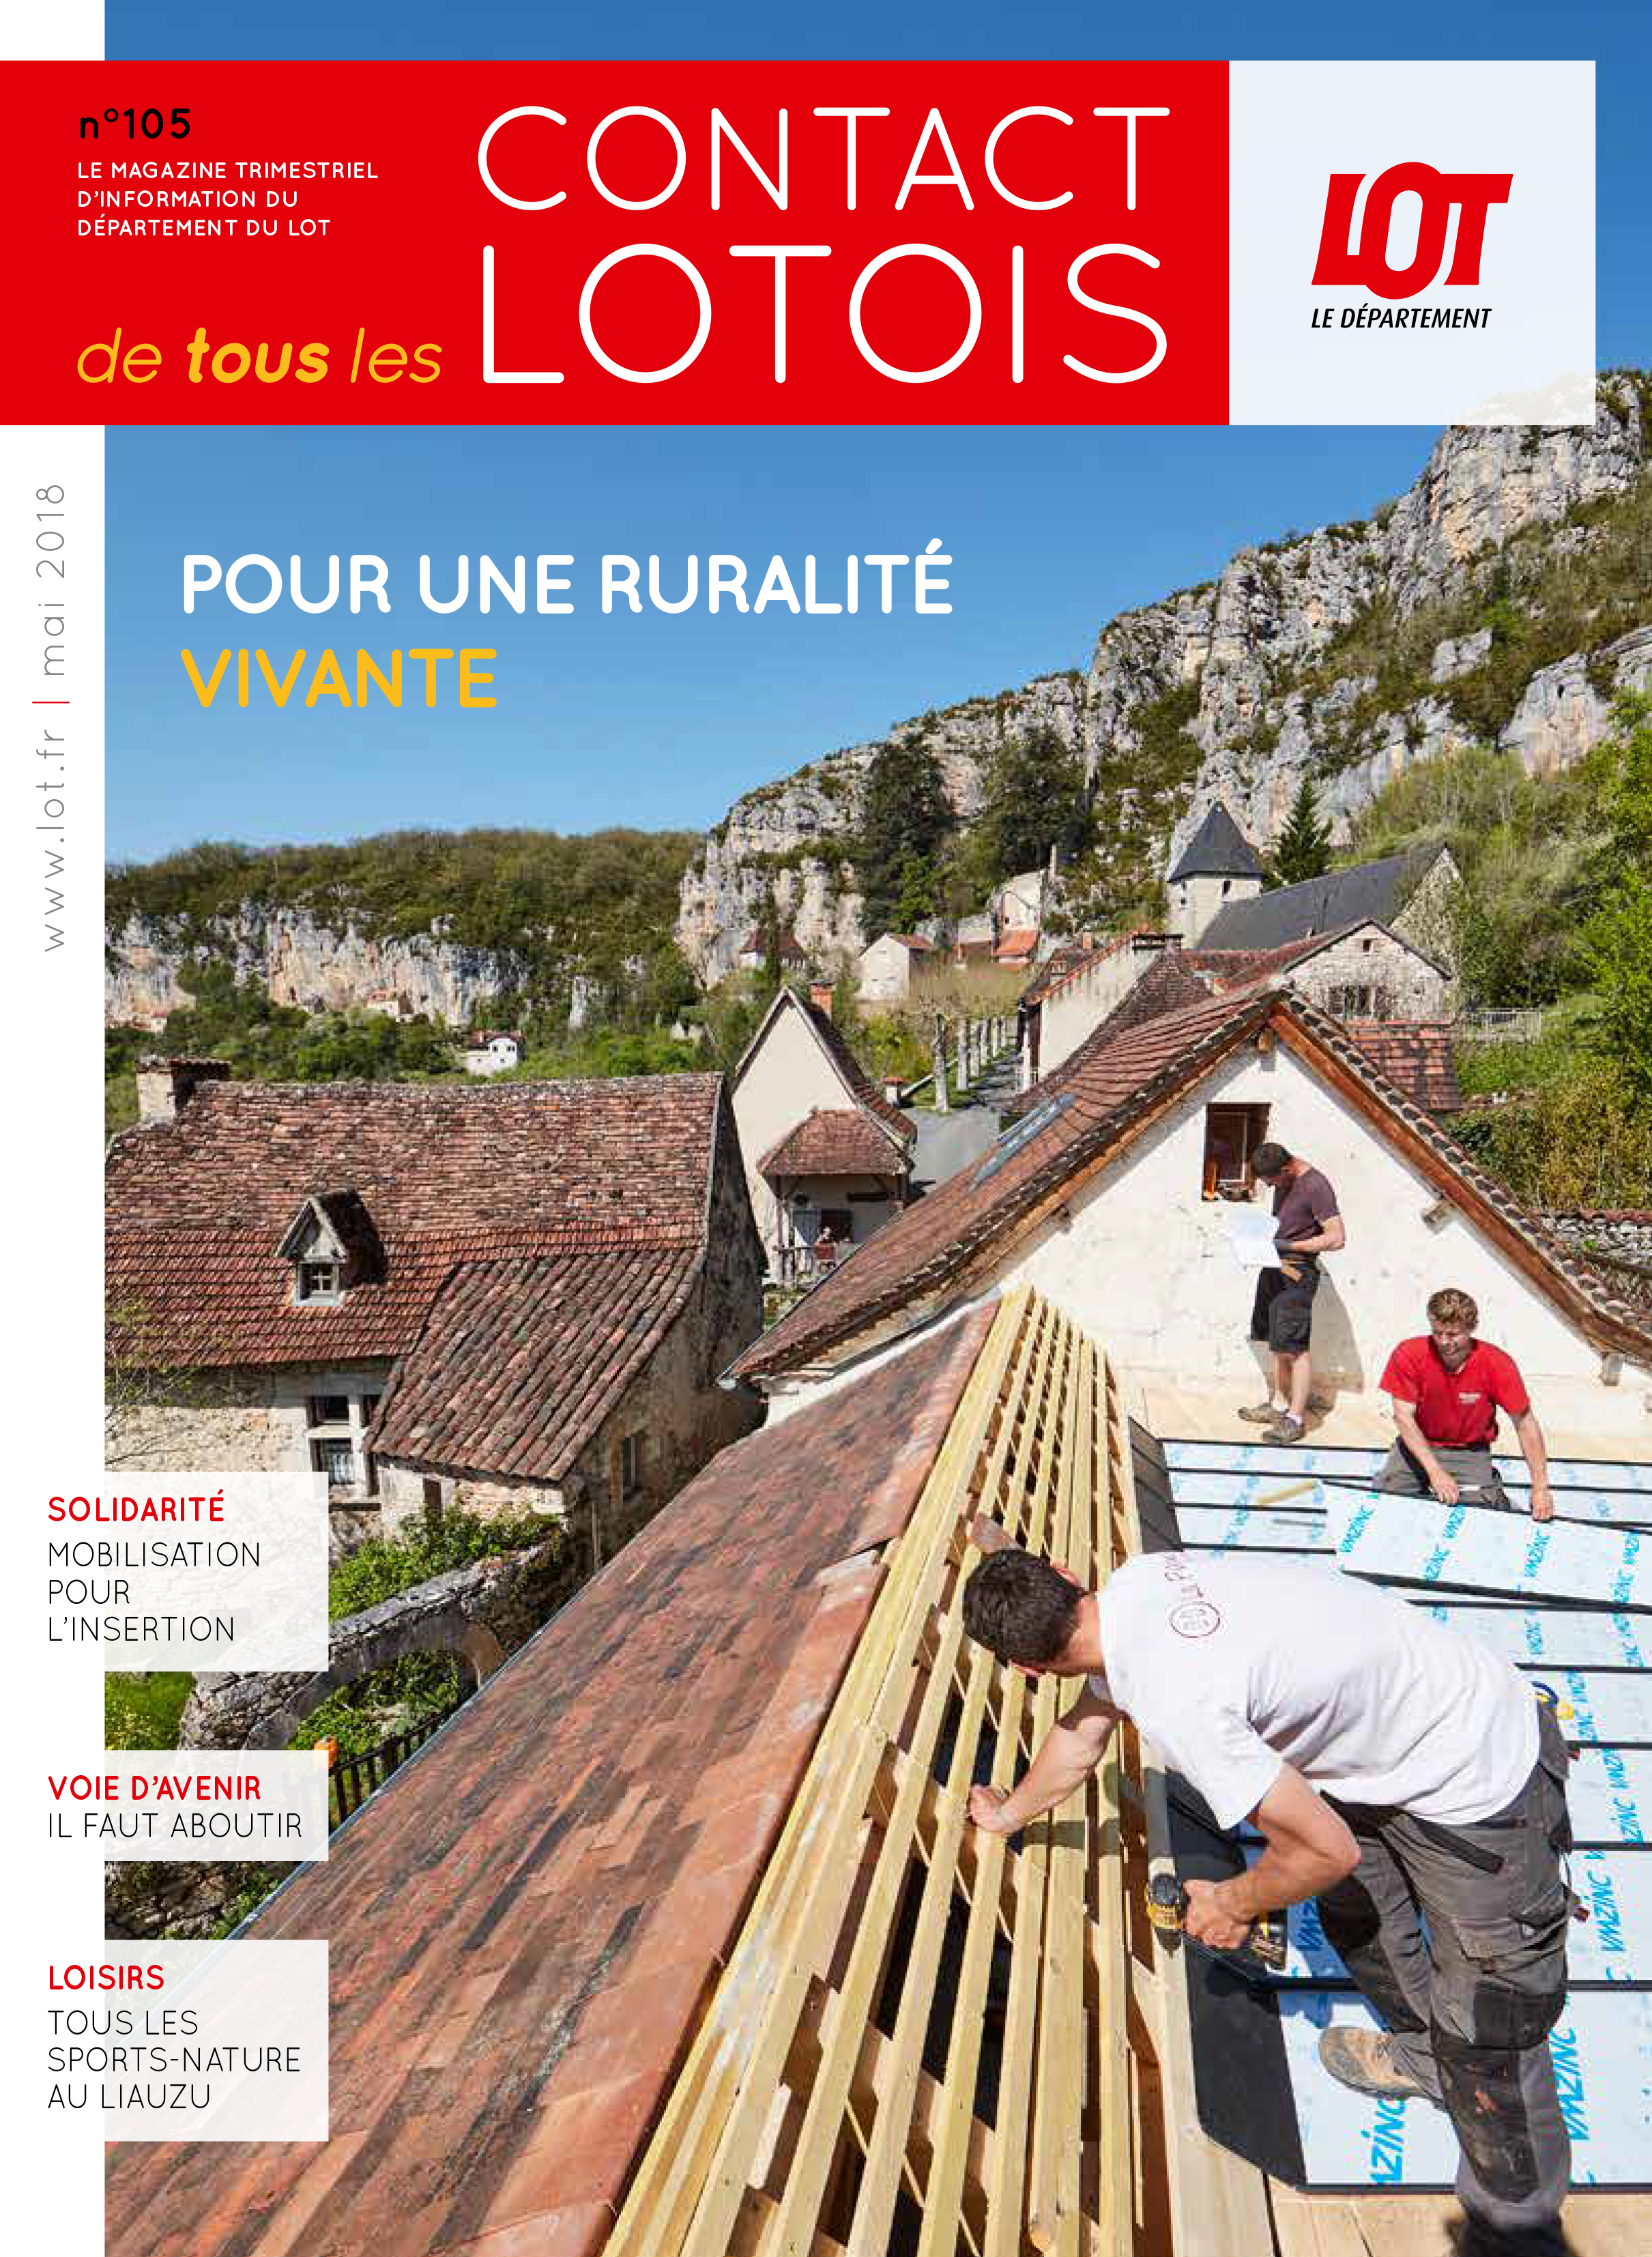 contact_lotois_105-couverture.jpg